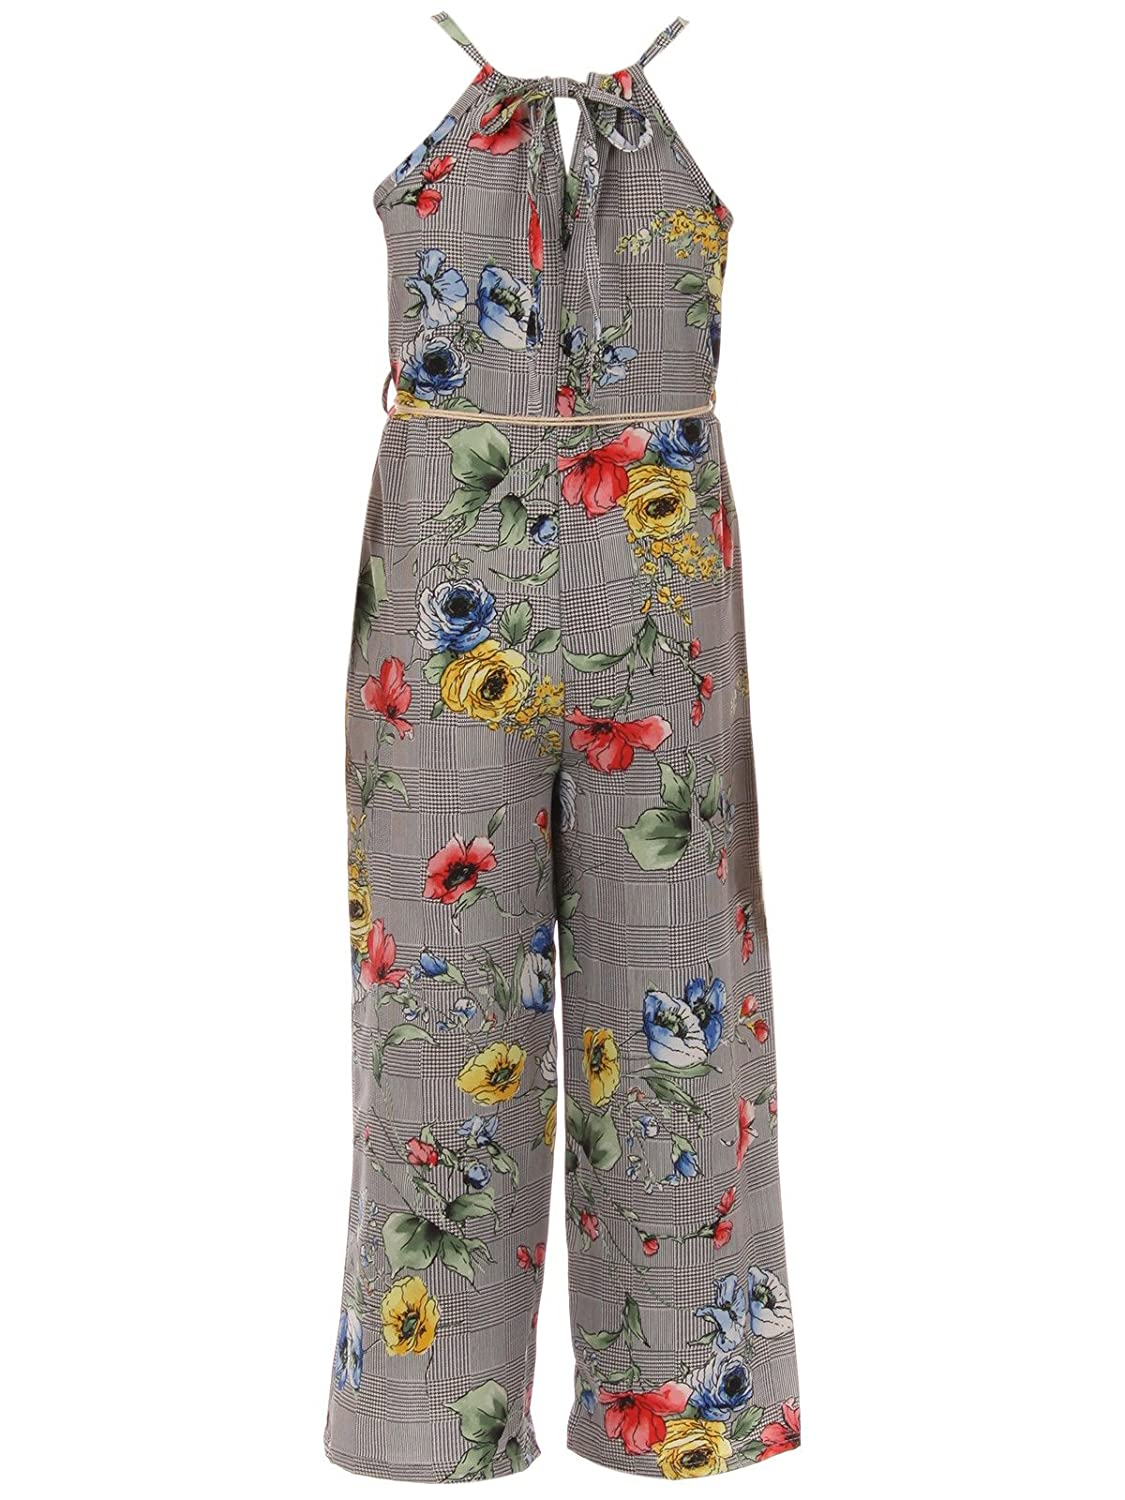 BNY Corner Girls Jumpsuits Floral Graduation Casual Summer Birthday Outfit 4-14 JKS 2127 SYYellow12